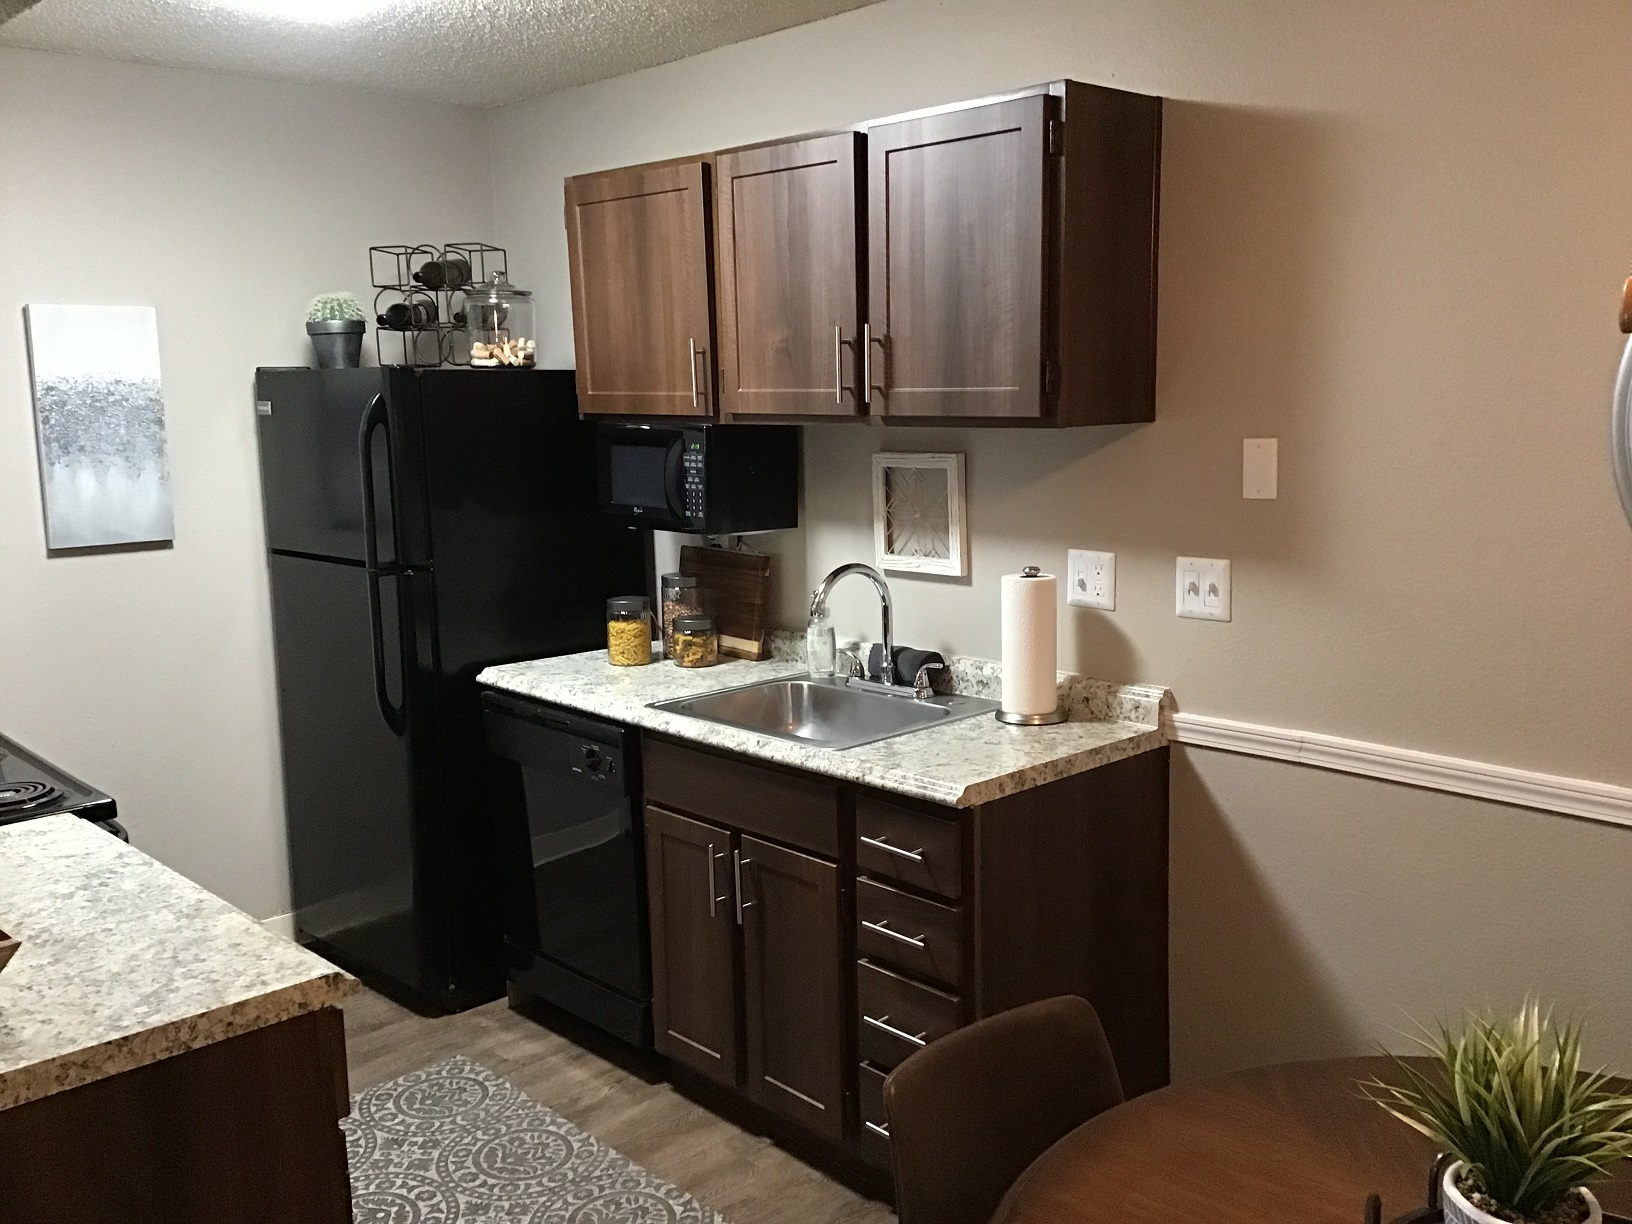 Fully Equipped Kitchen at Rustic Woods Apartments in Tulsa, Oklahoma